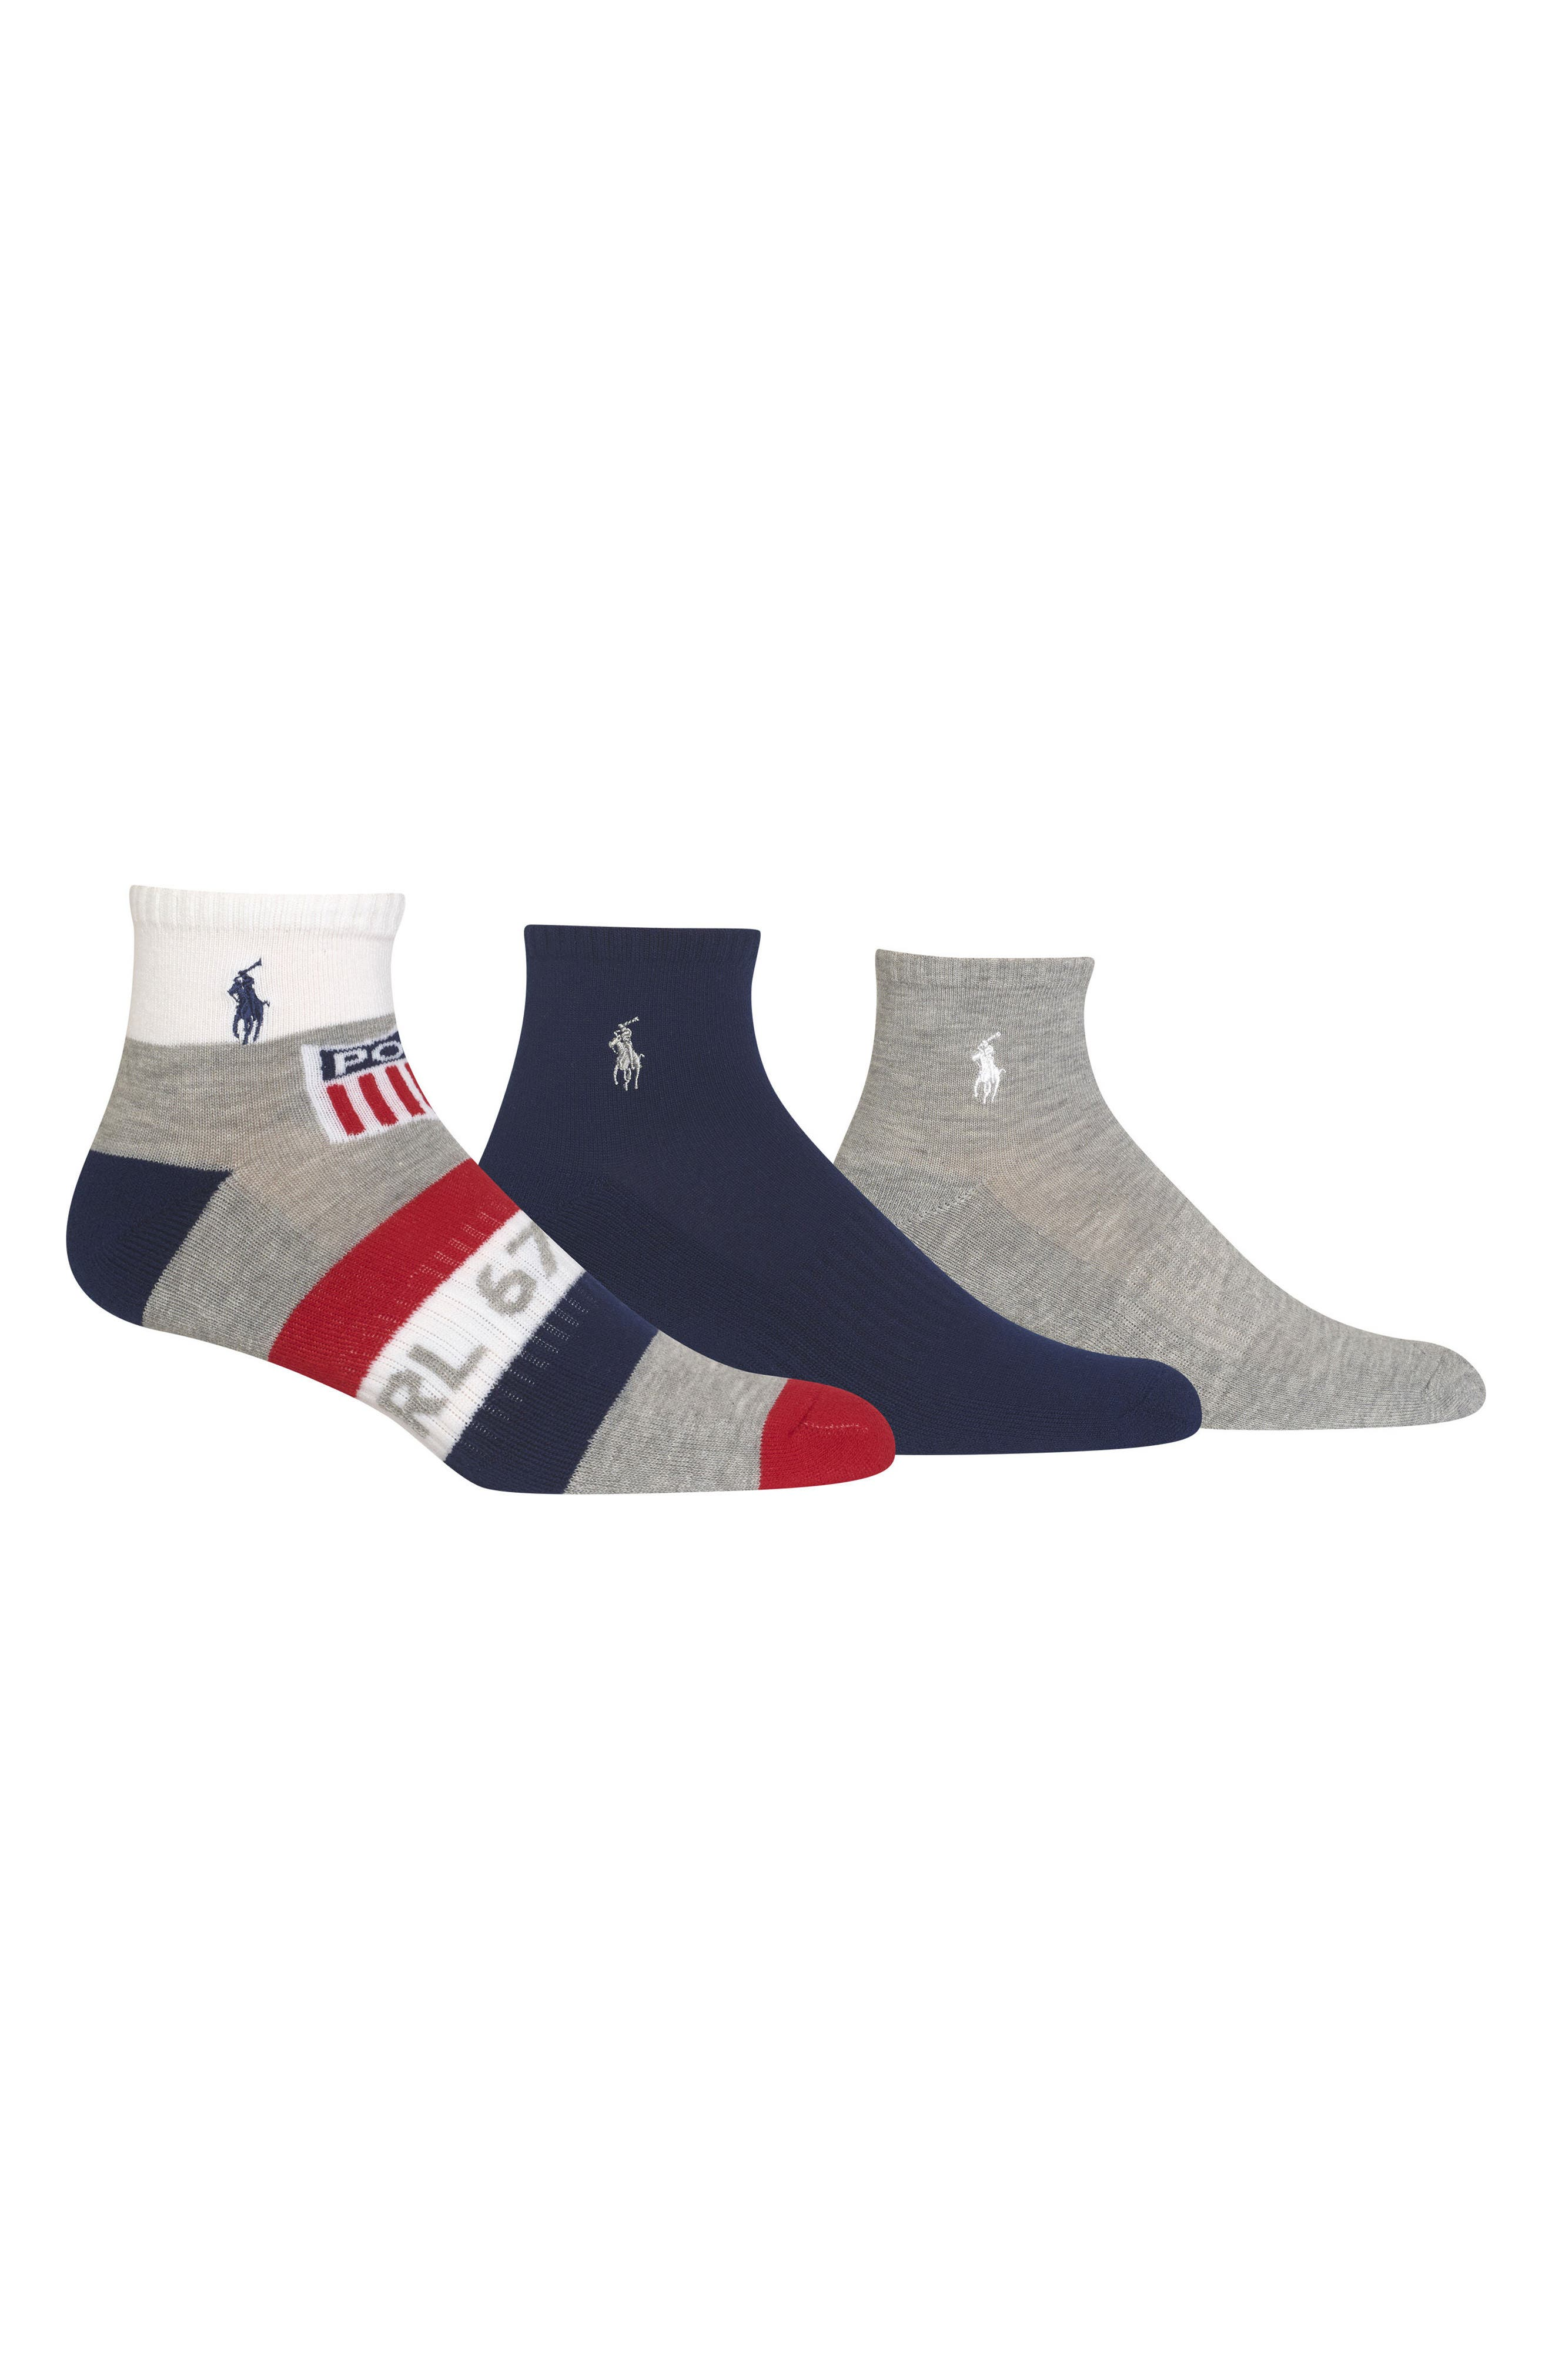 Ralph Lauren Athletic Shield 3-Pack Socks,                             Main thumbnail 1, color,                             Grey/ White/ Red/ Blue